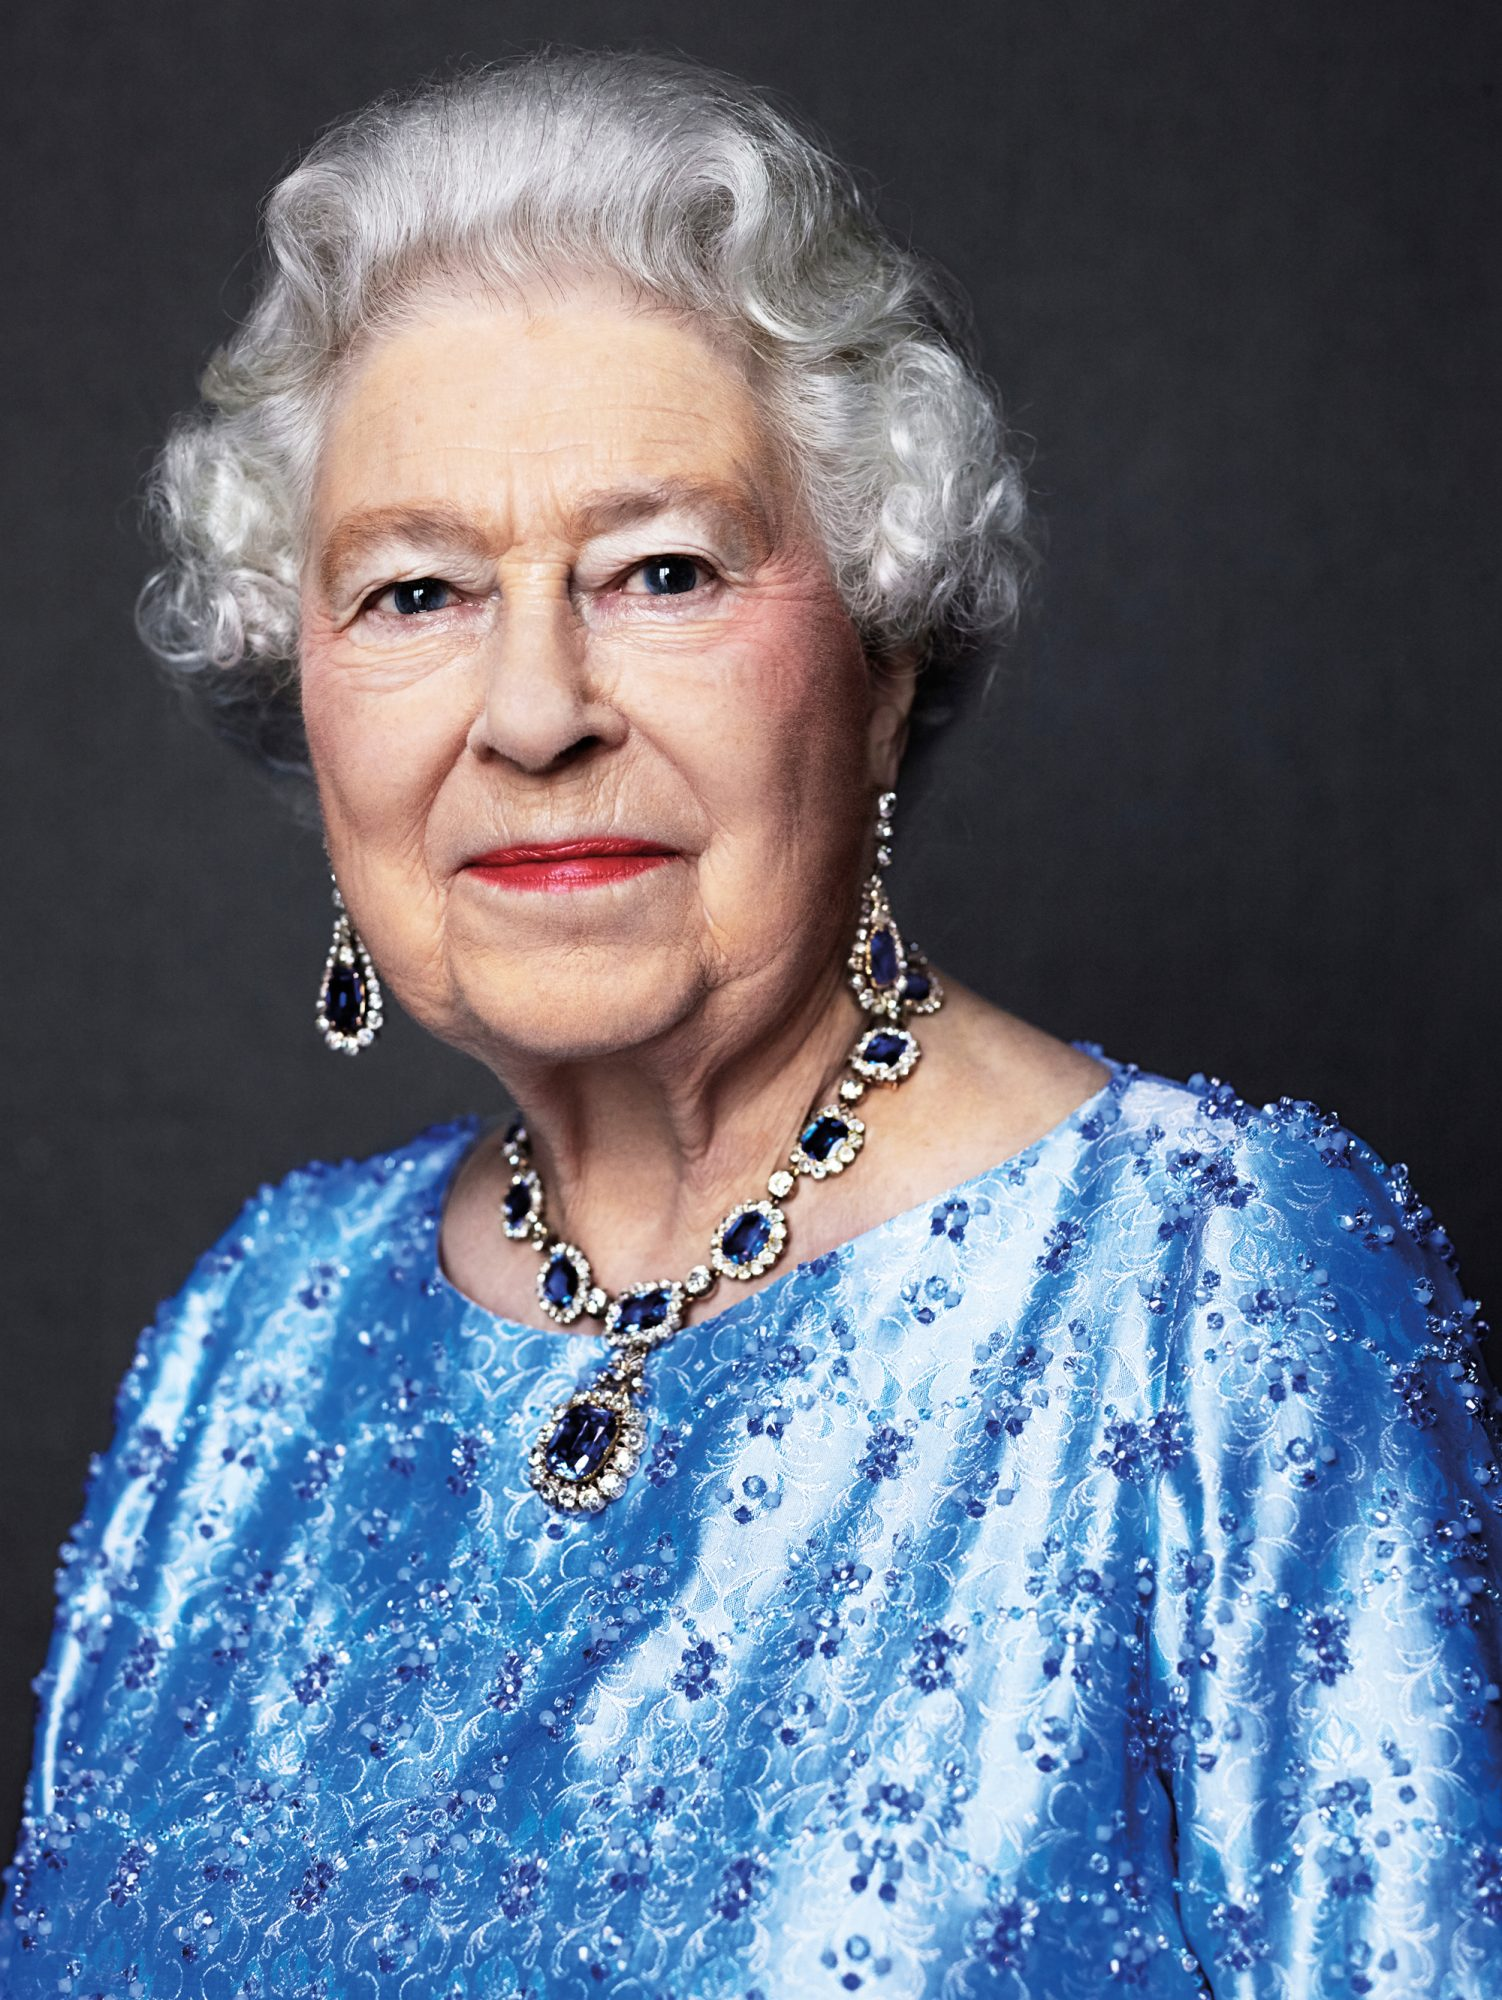 Queen Elizabeth Celebrates Her Record-Breaking Reign with a Sparkling Sapphire Portrait